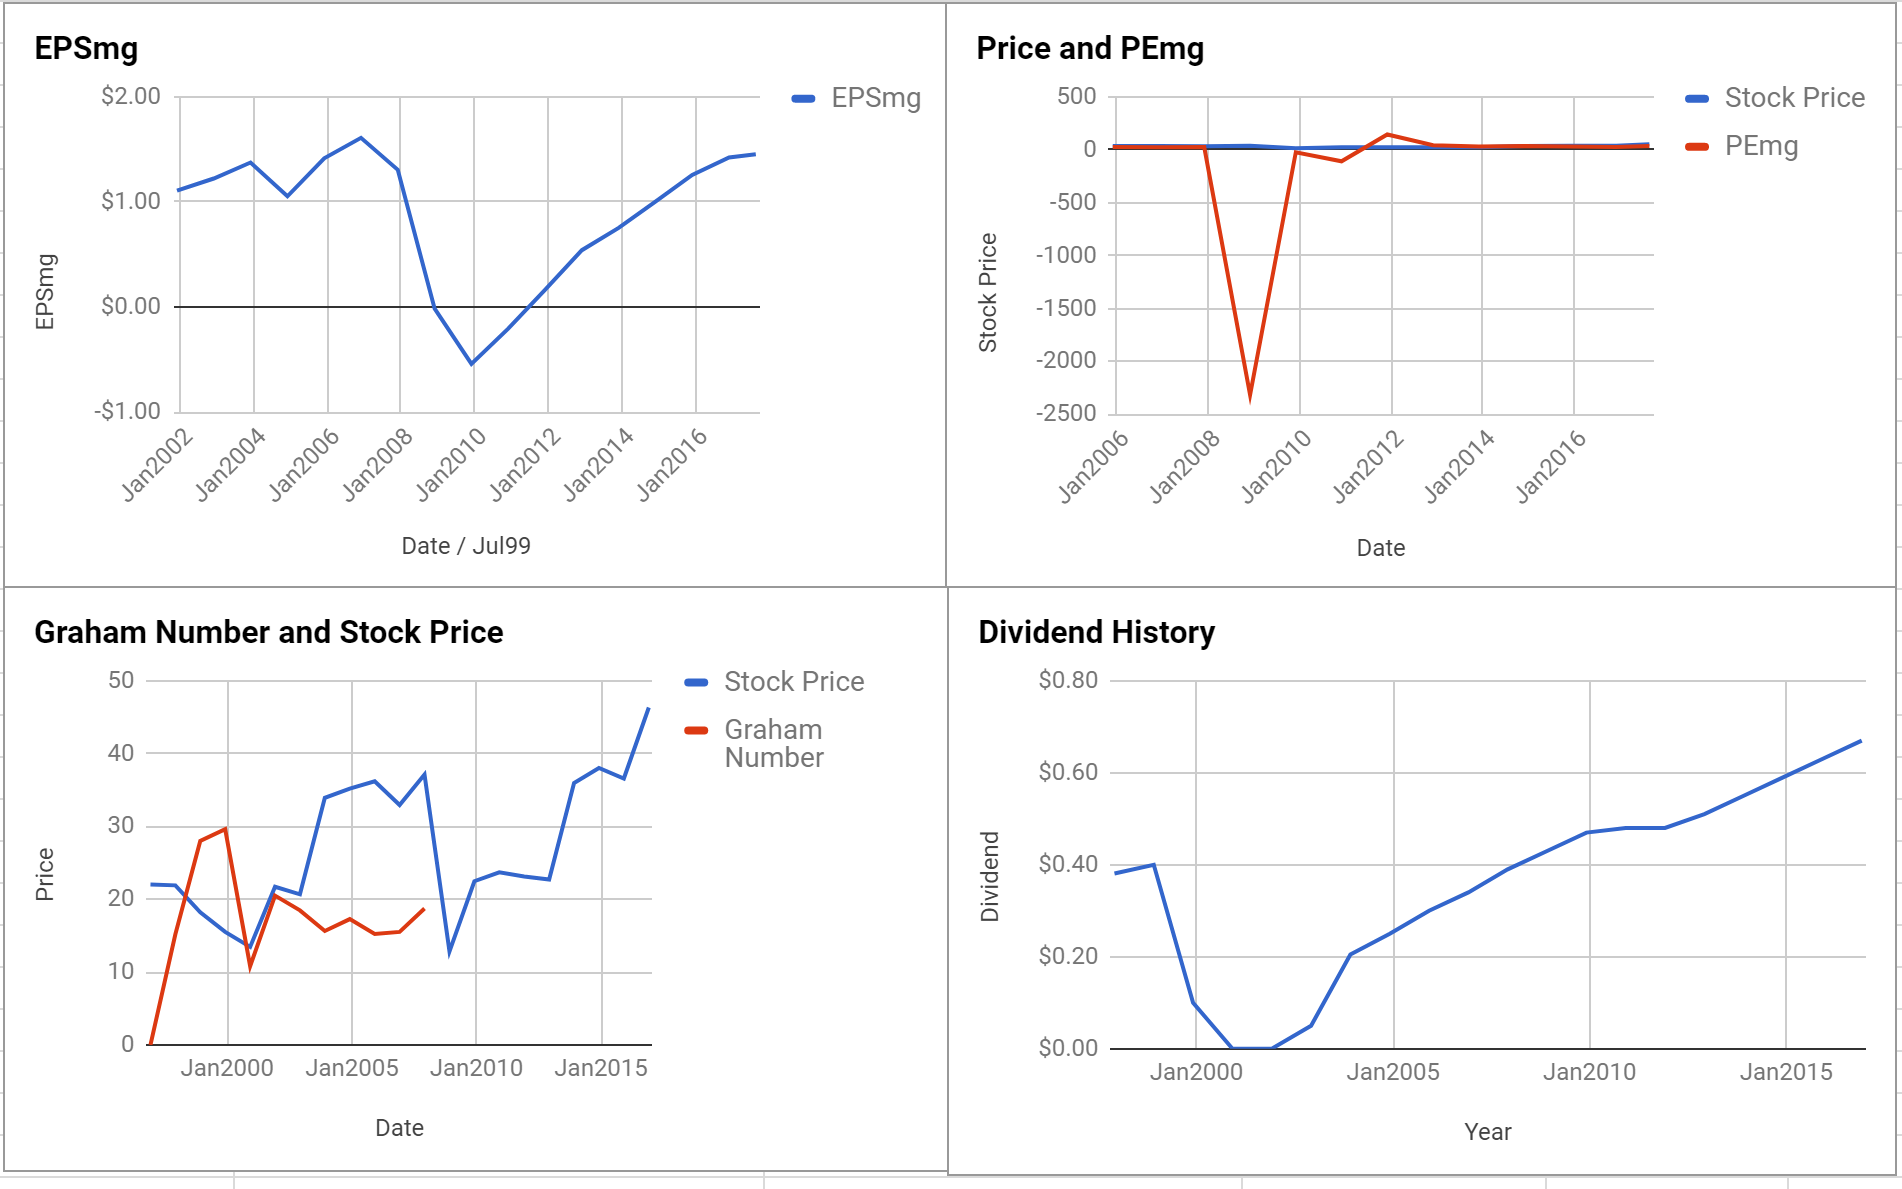 Albany International Corp Valuation – Initial Coverage $AIN